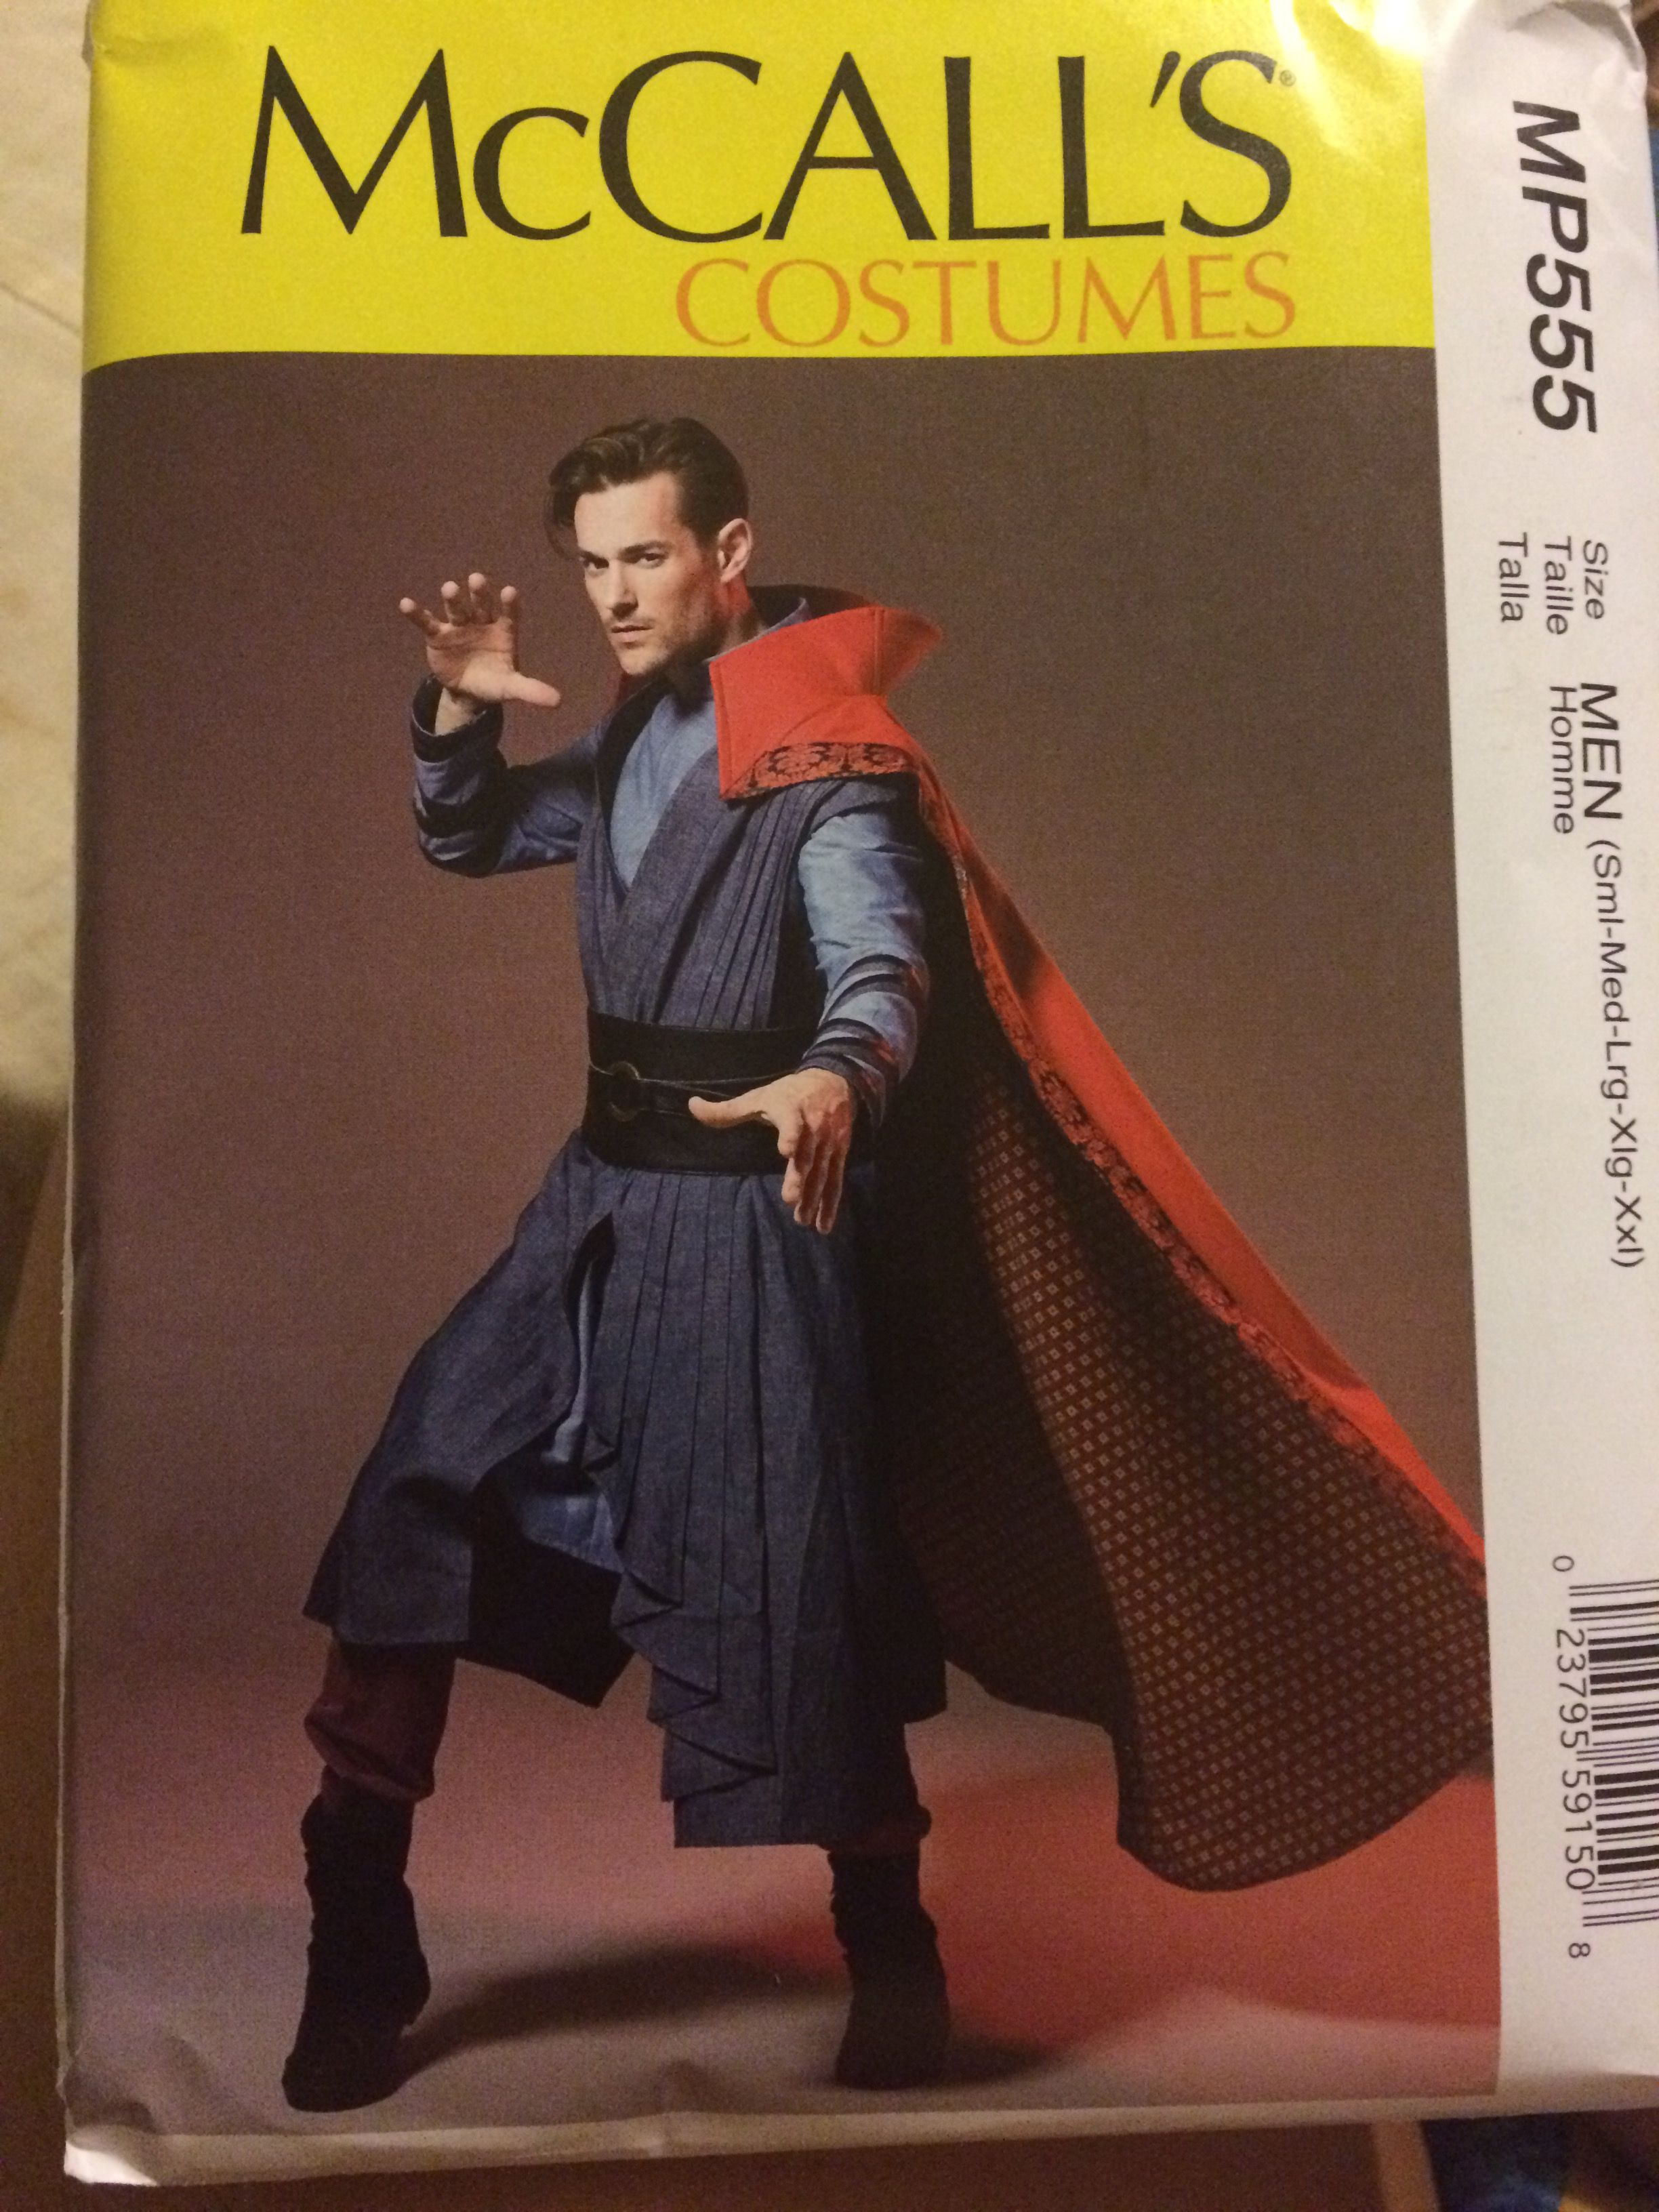 McCalls MP555 Dr. Strange costume | Pattern whore: Yes I am ...